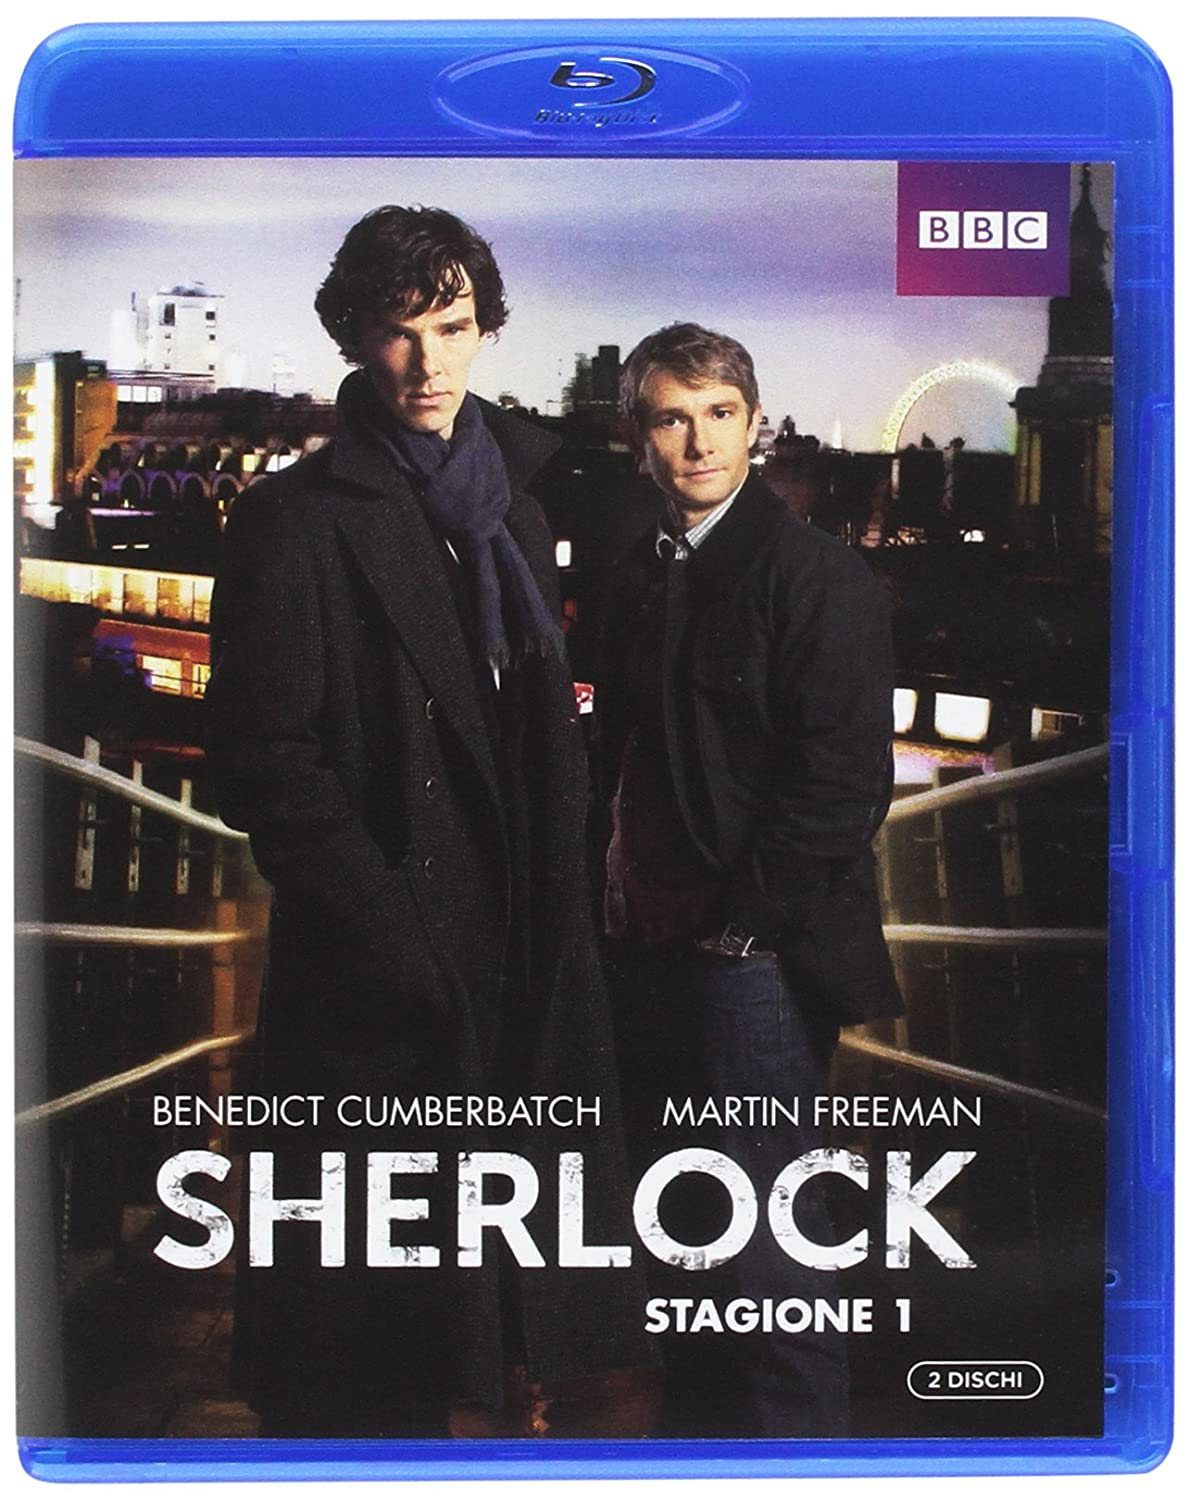 Sherlock - Definitive Edition - Stagione 1 Completa (2010) Full Blu Ray 1:1 AVC ITA-ENG DTS-HD MA 5.1